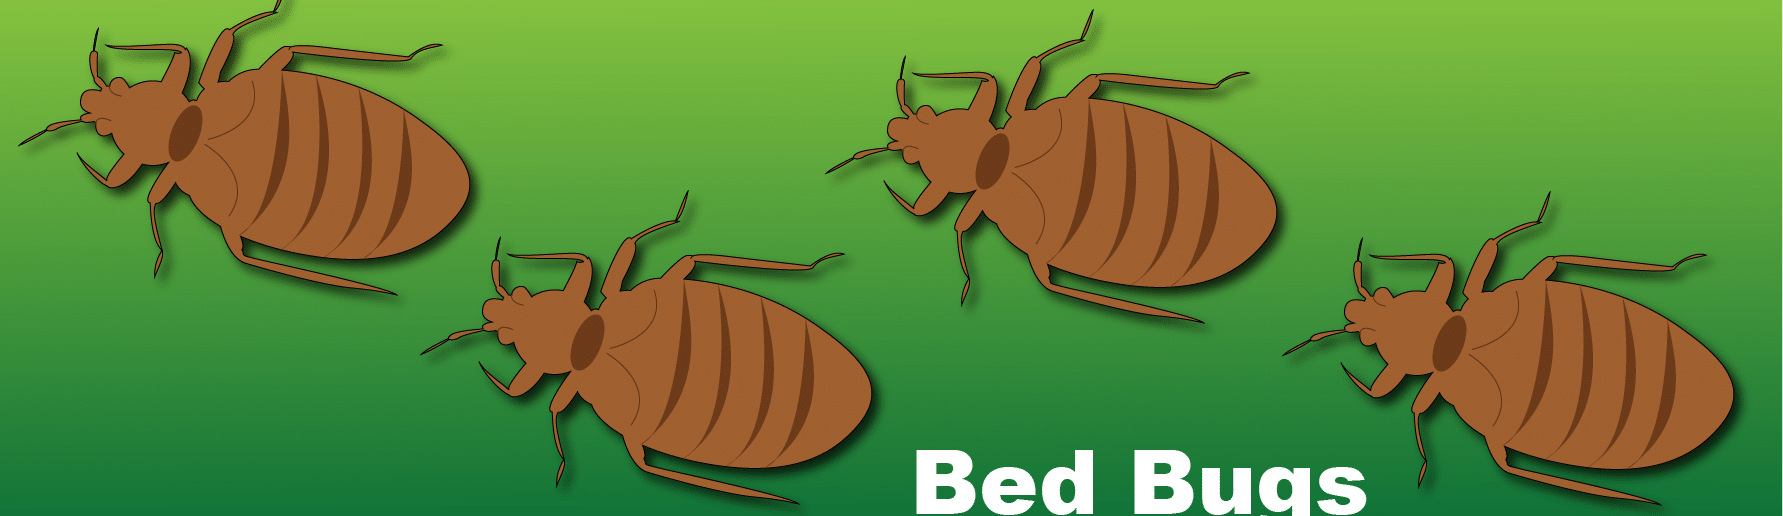 bed bugs infographic header